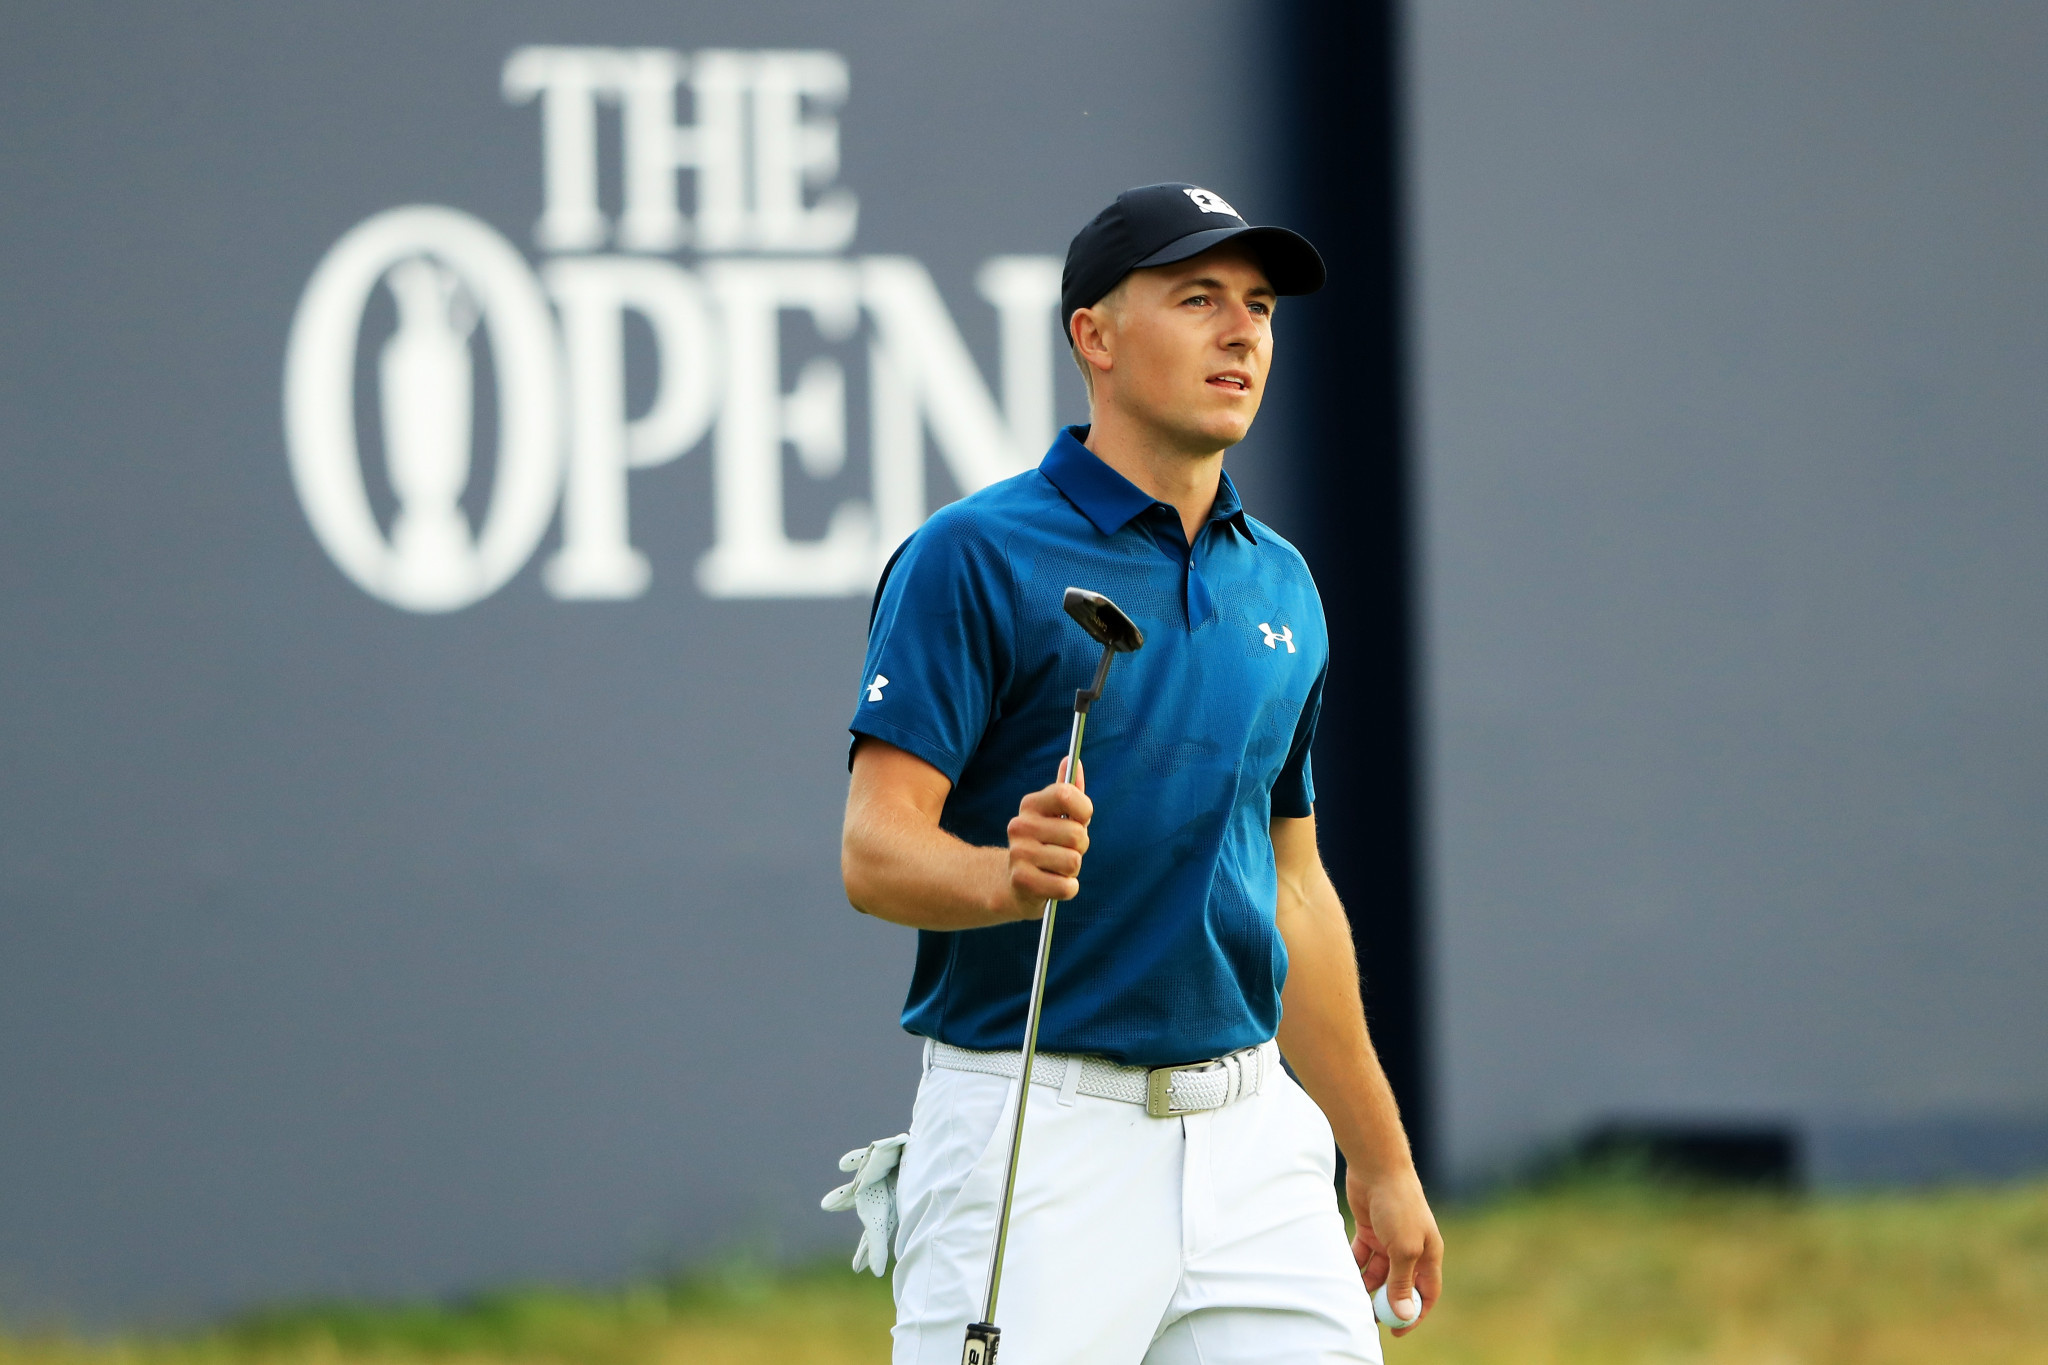 Defending champion Spieth shares lead going into final day of The Open but Woods still in contention